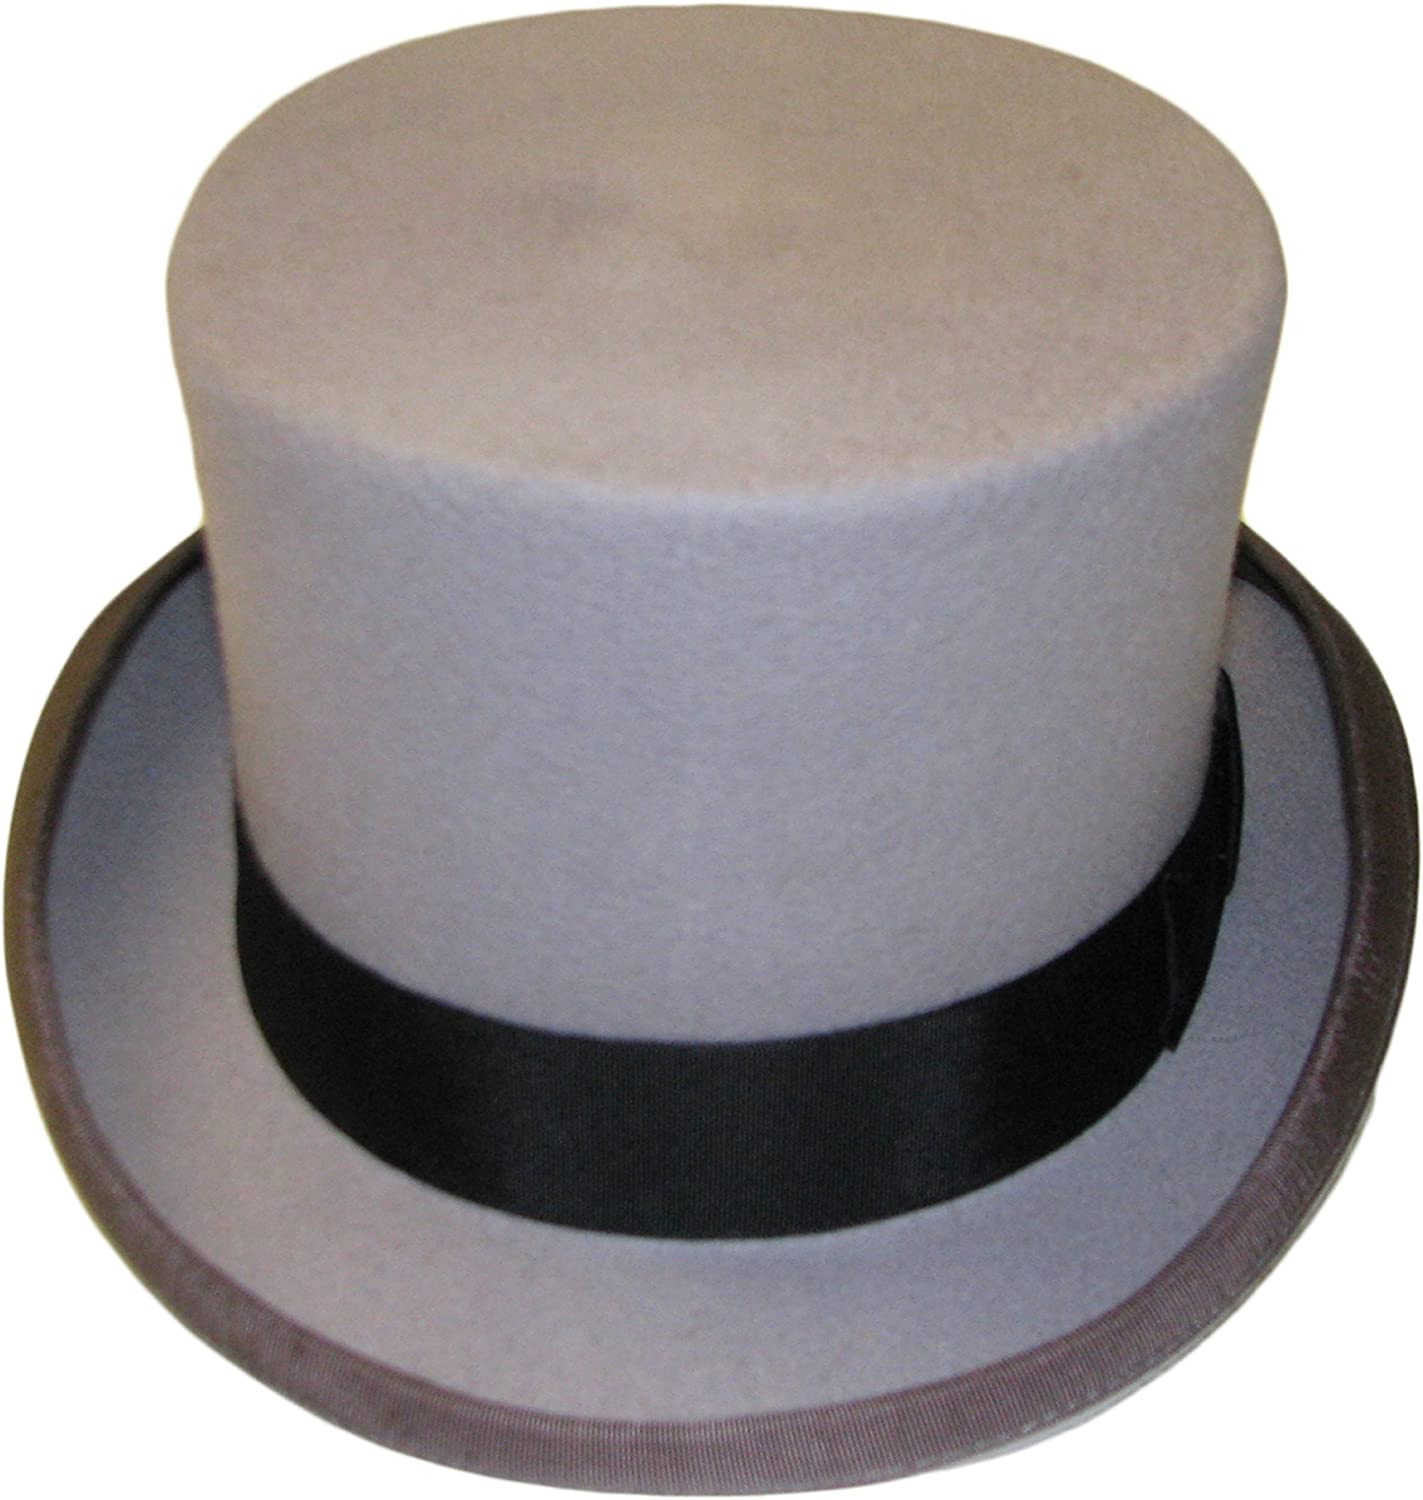 100/% Wool High Quality Mustard Wedding Event Top Hat With Satin Lining